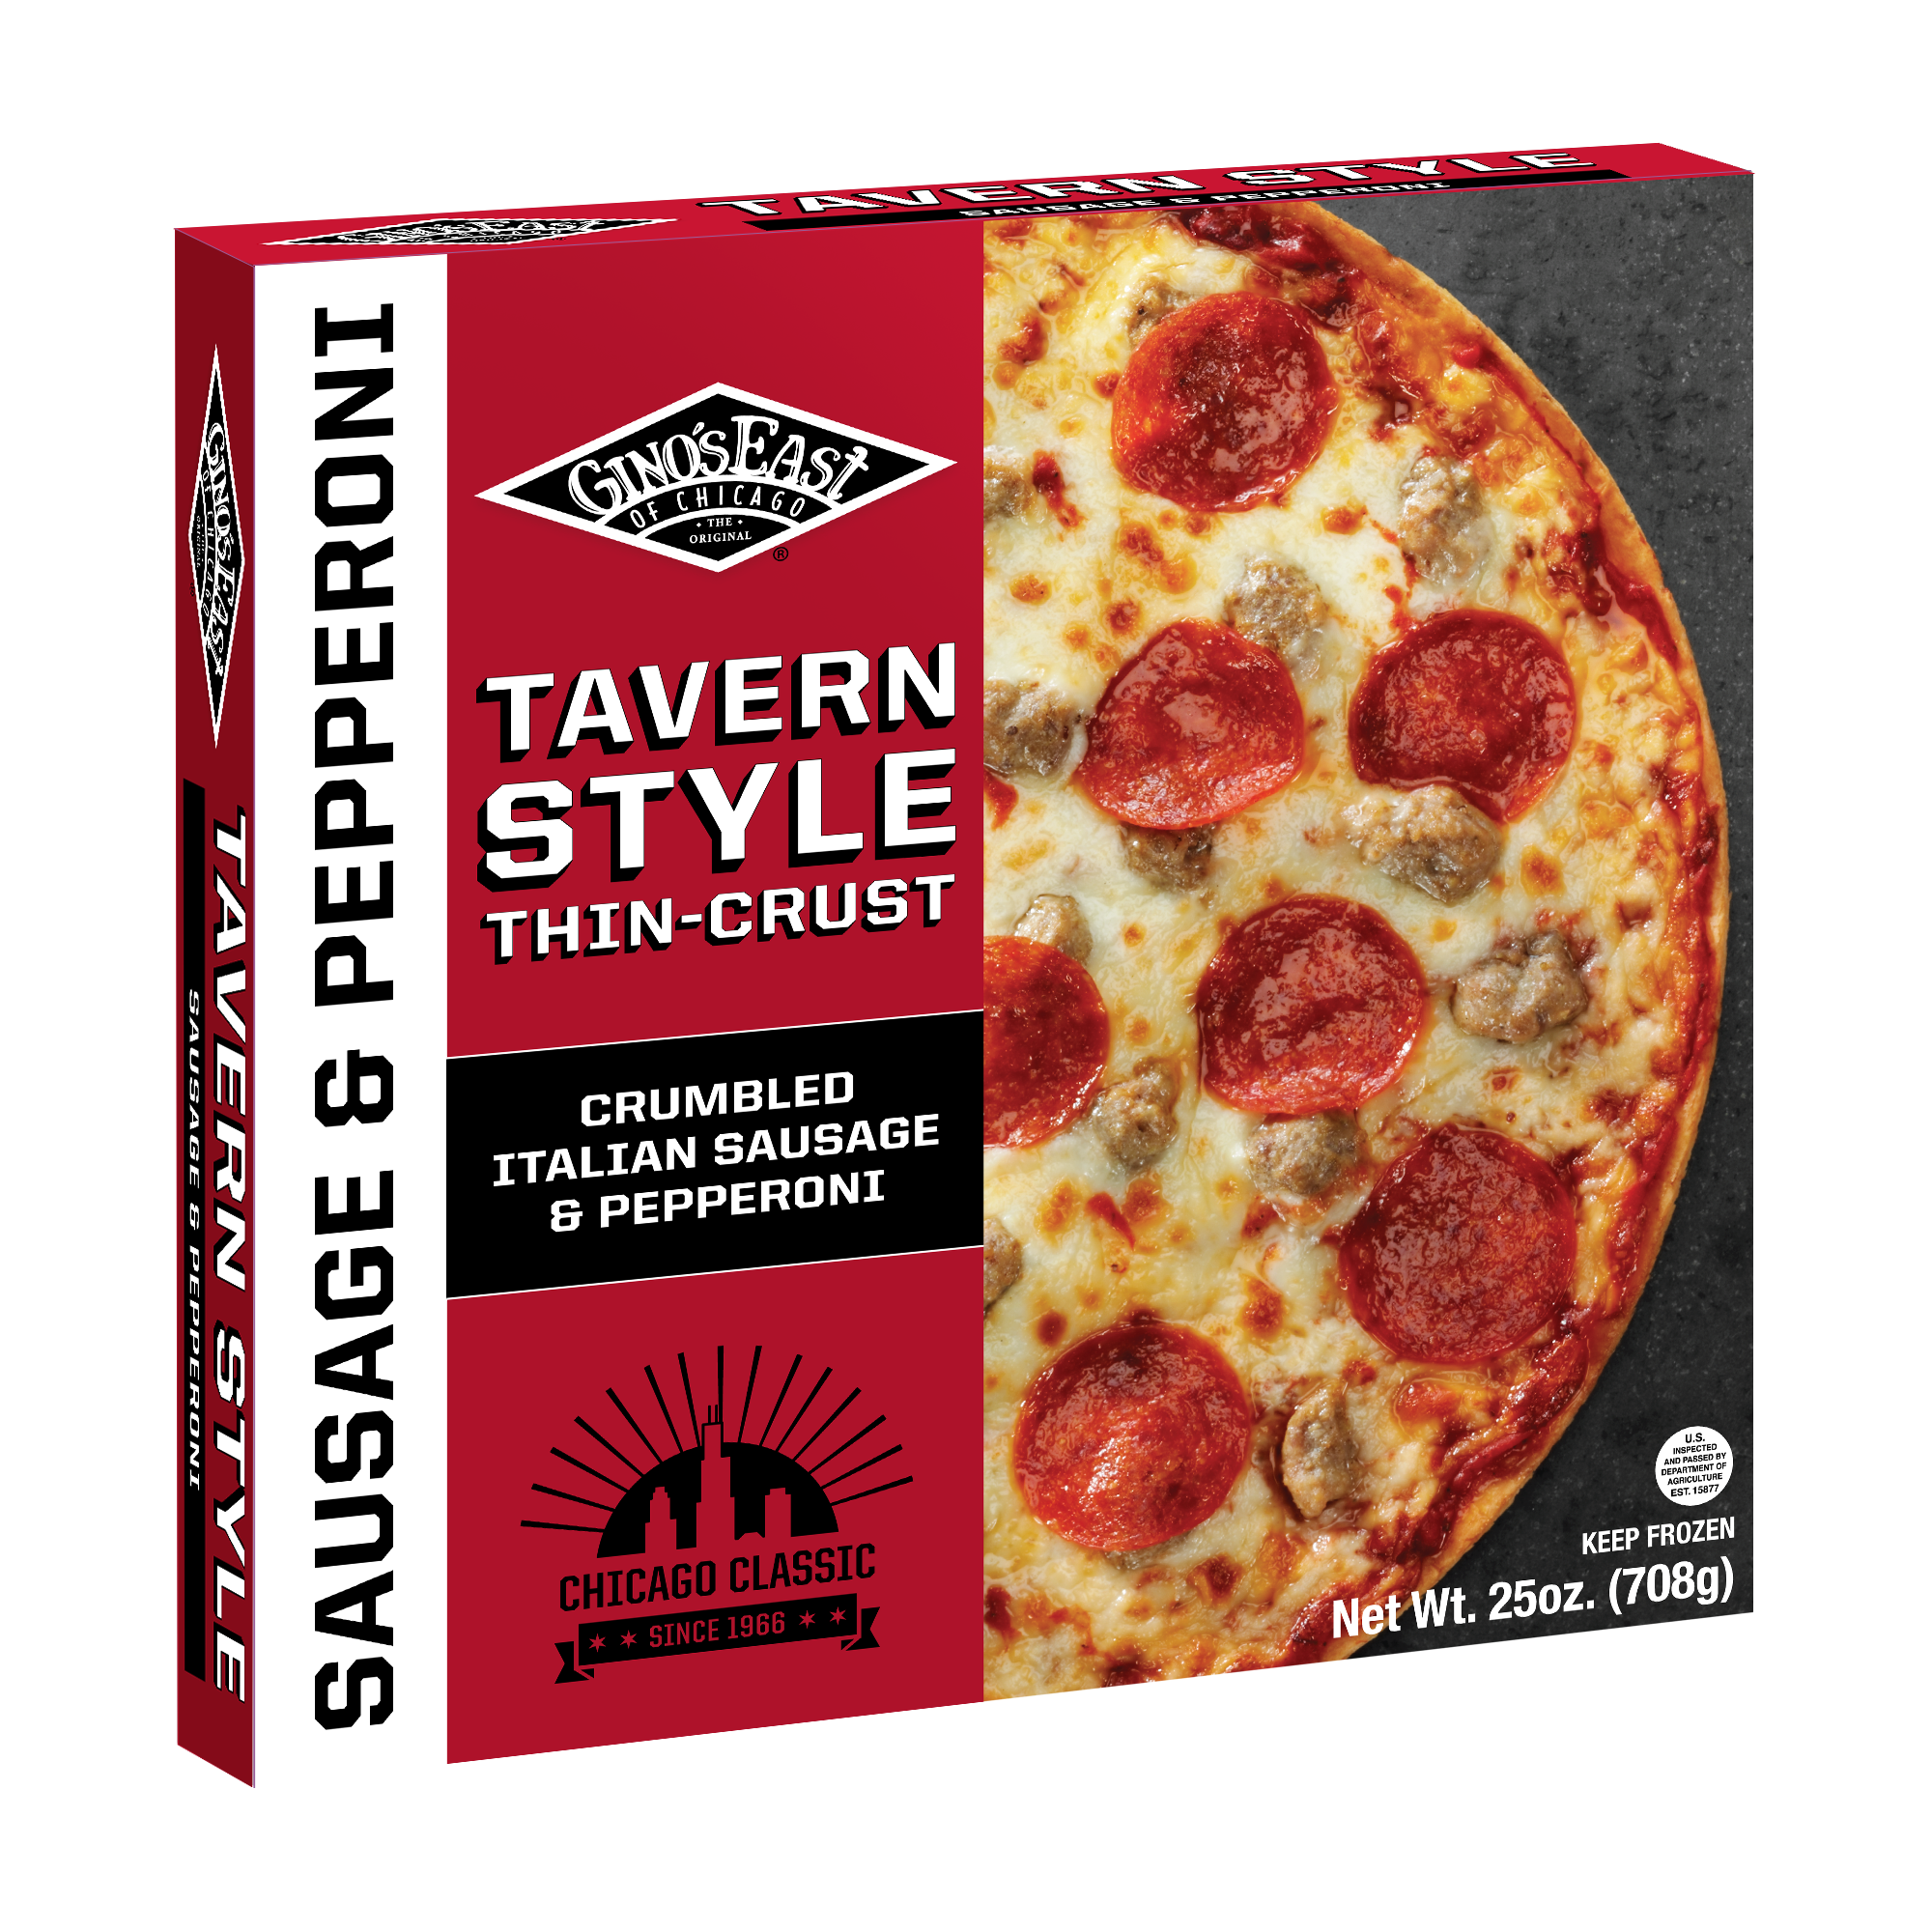 """tavern style italian sausage pepperoni thin crust pizza how do you ship frozen pizza"""",""""frozen pizza questions"""""""